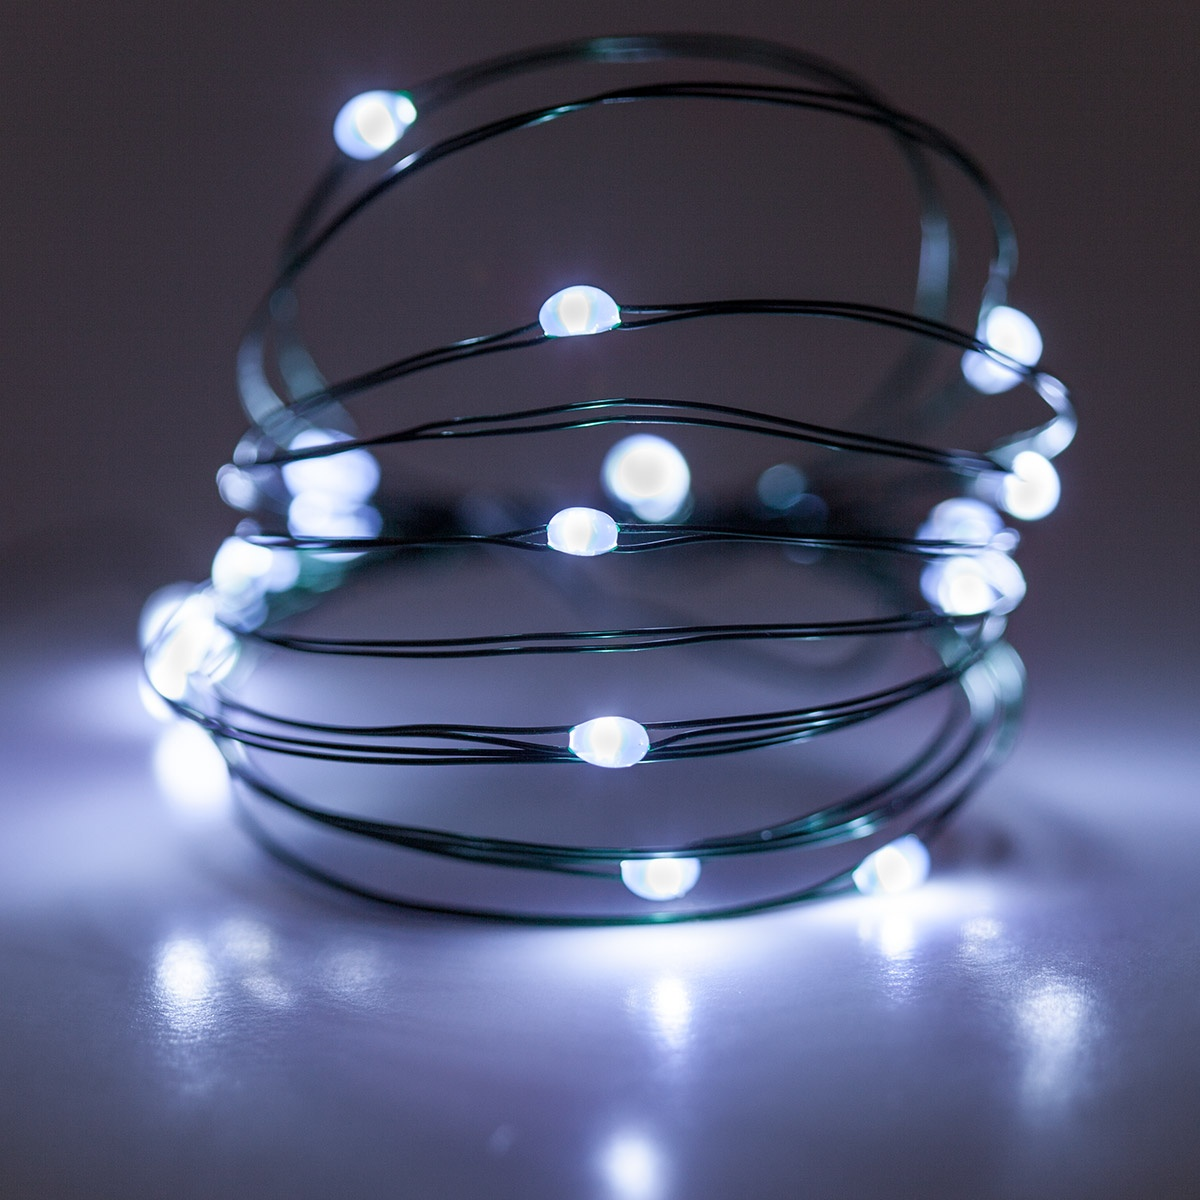 Artificial Christmas Garland With Lights